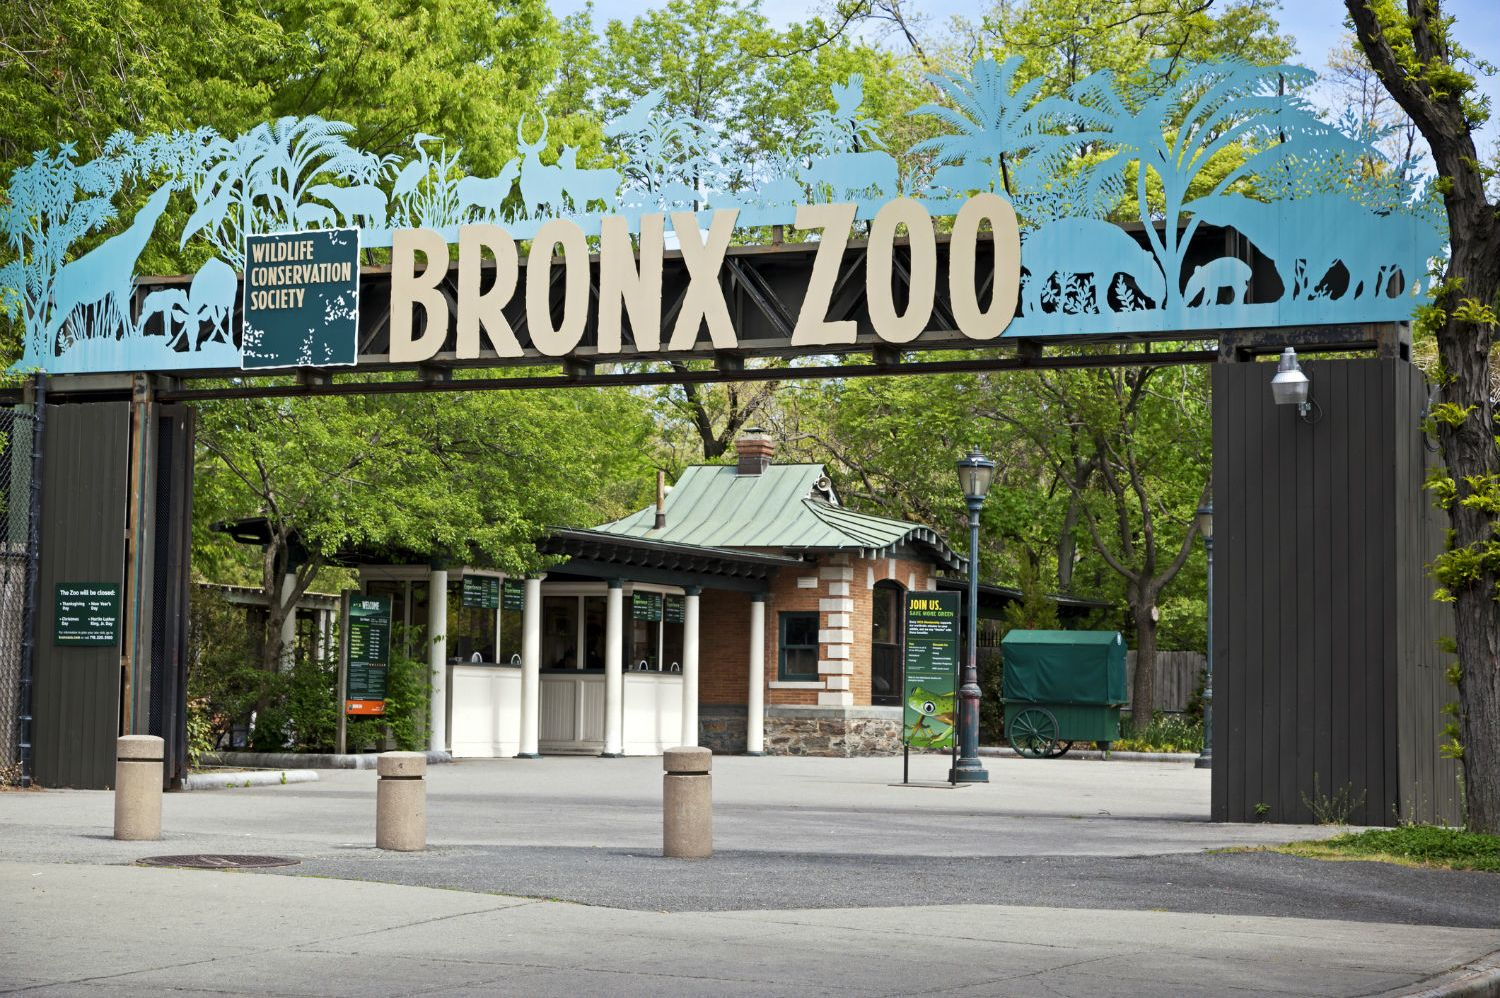 9 Wild Facts About the Bronx Zoo